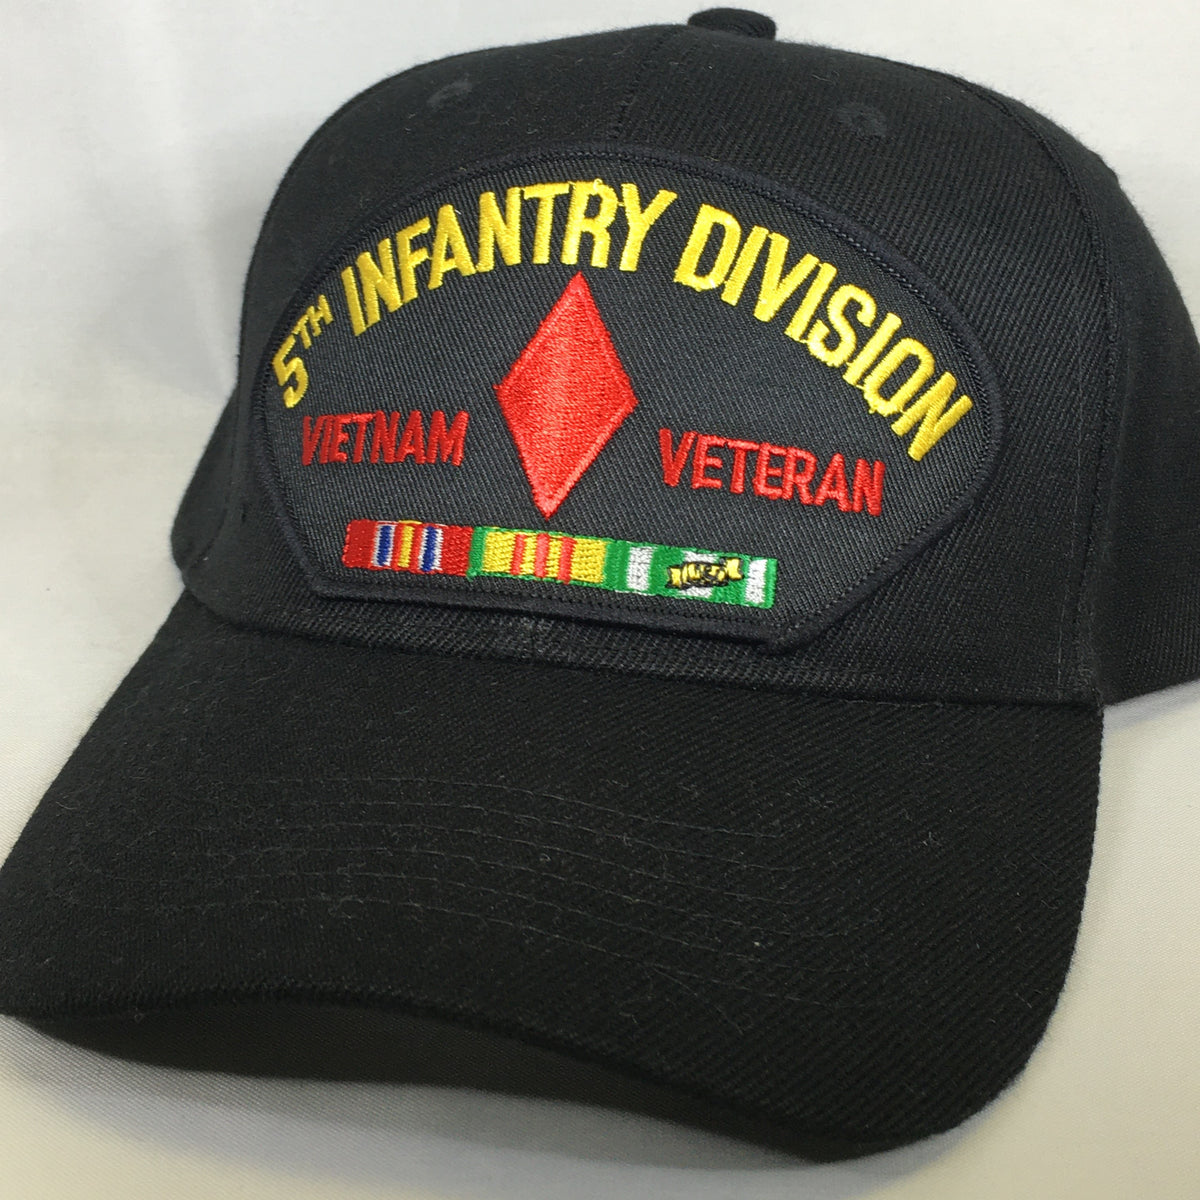 5th Infantry Division Vietnam Veteran Cap